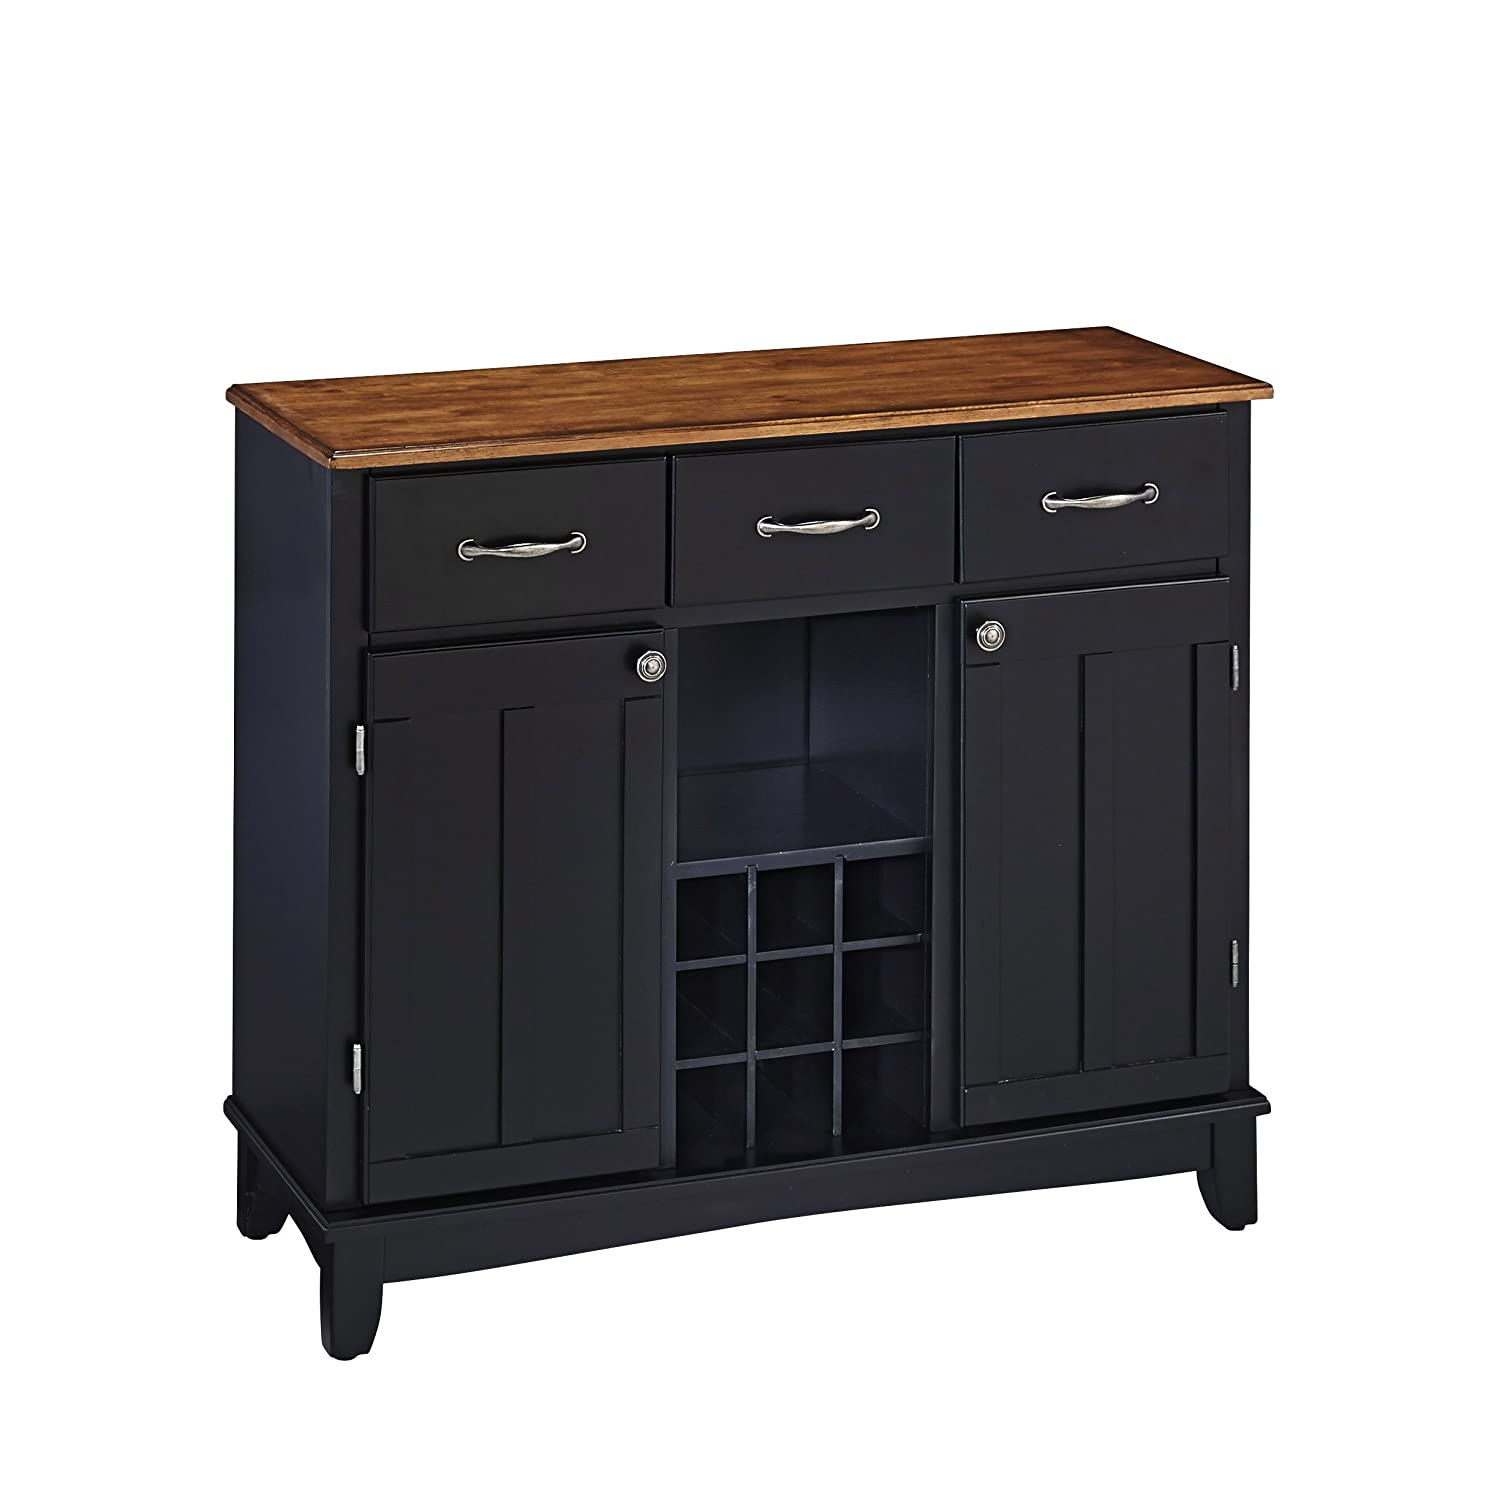 Amazon.com   Home Styles 5100 0046 Buffet Of Buffets Cottage Wood Top  Buffet Server, Black Finish, 41 3/4 Inch   Buffets U0026 Sideboards